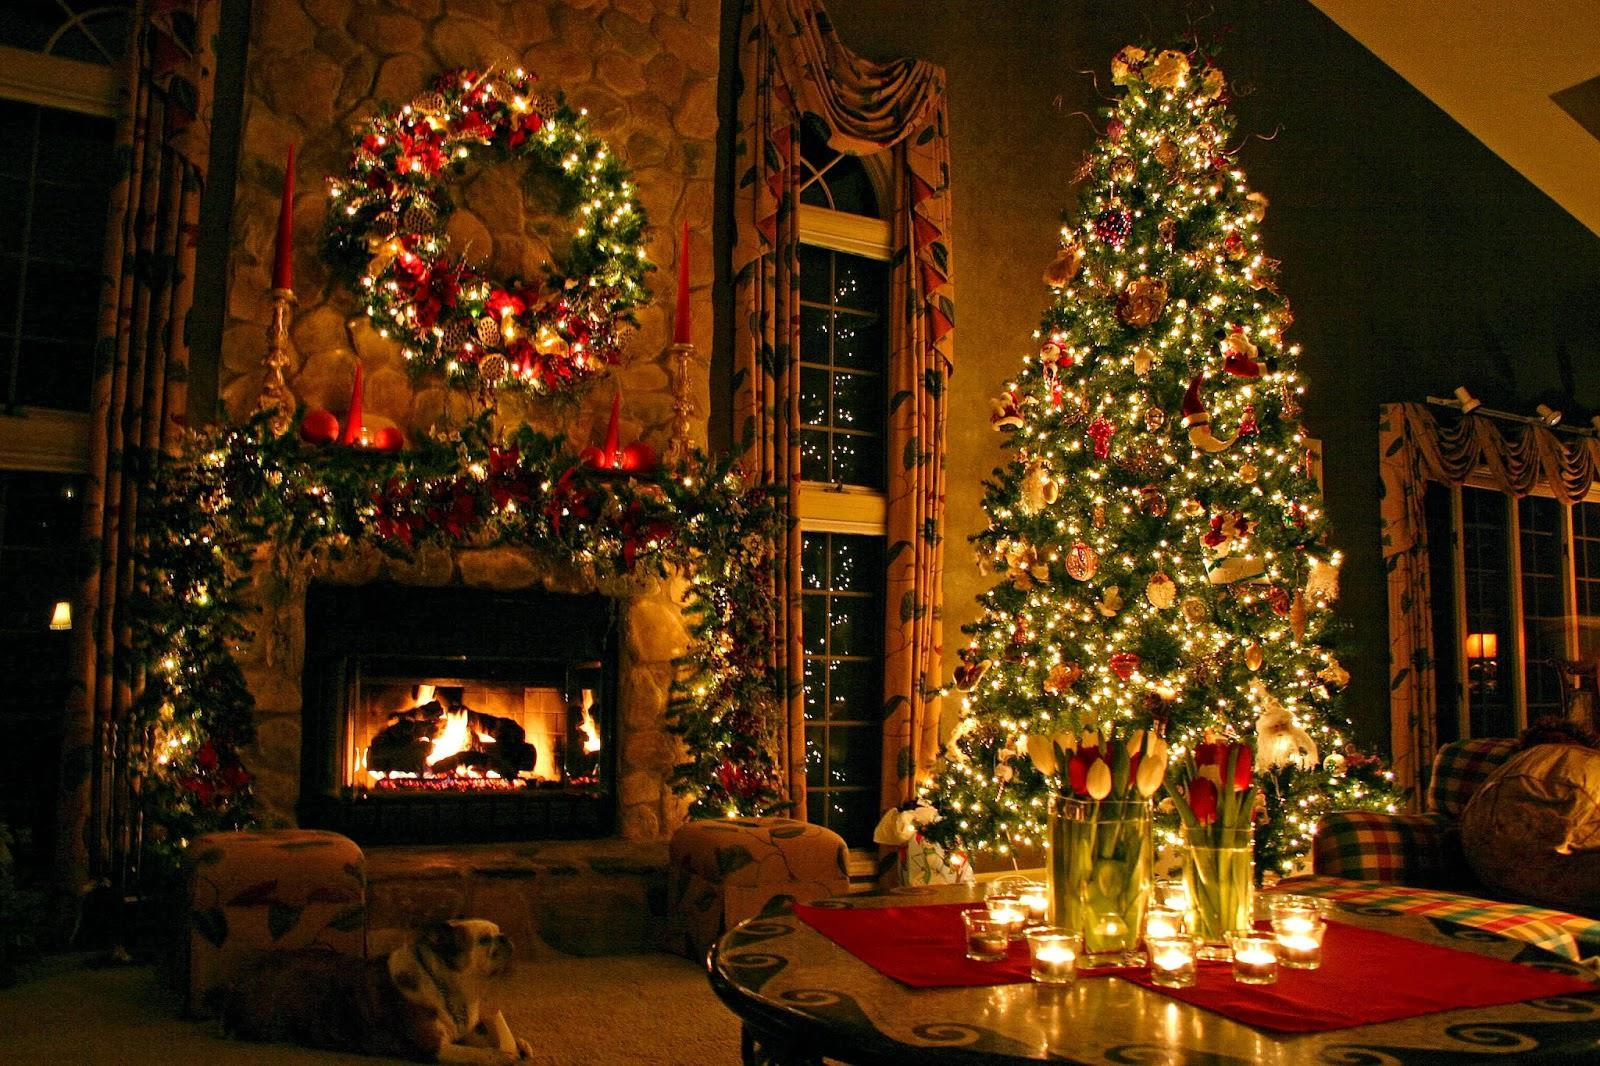 29 Inspirational Christmas Tree Decorating Ideas 2018 – 2019 with ...